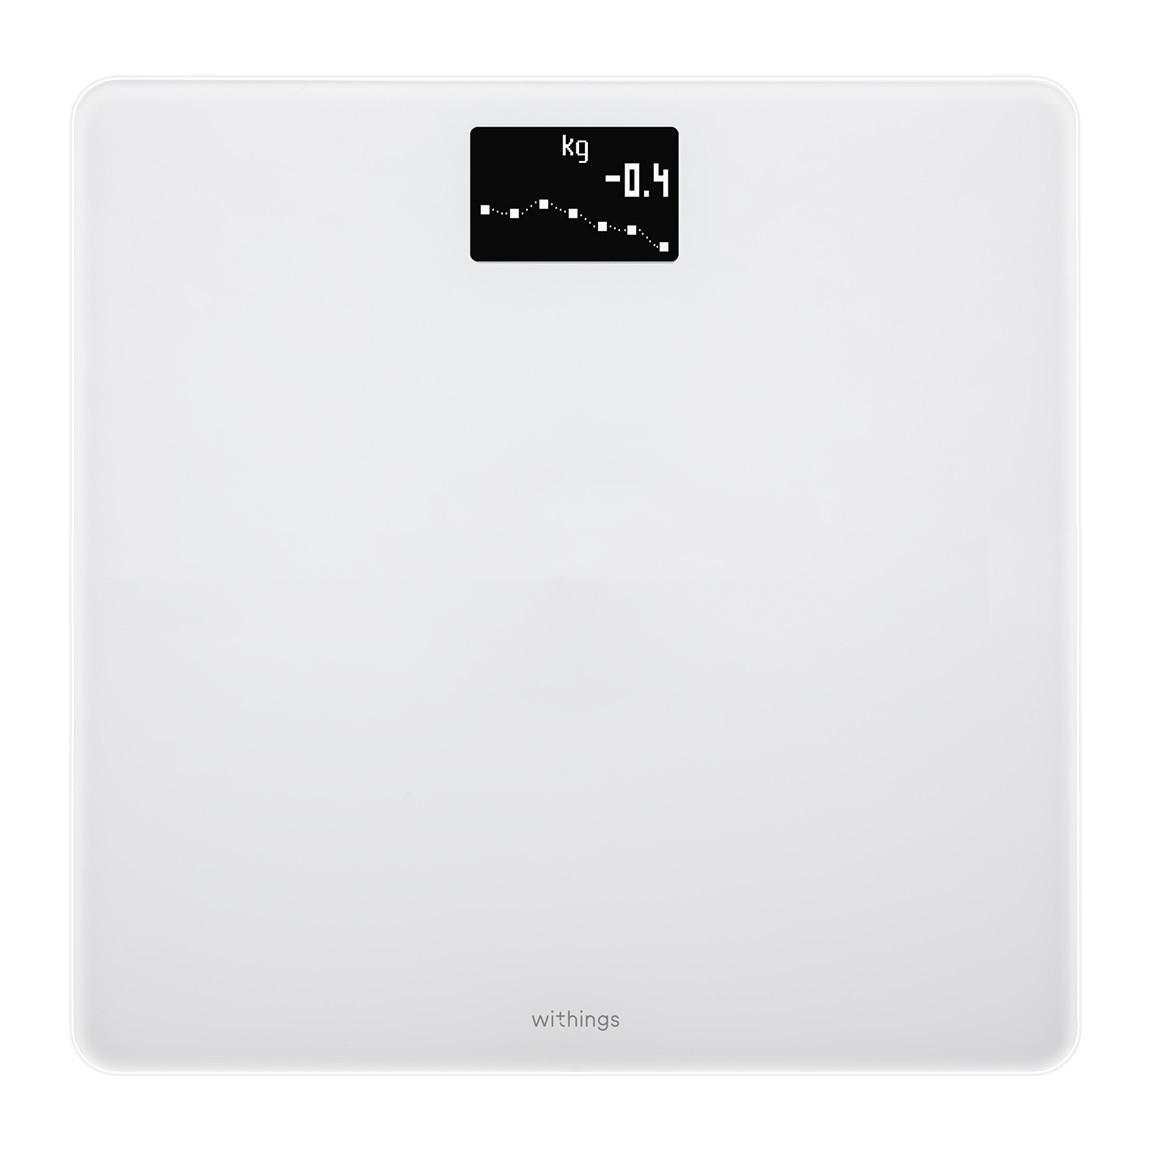 Withings Body - WLAN-Körperwaage mit BMI-Funktion - Weiß